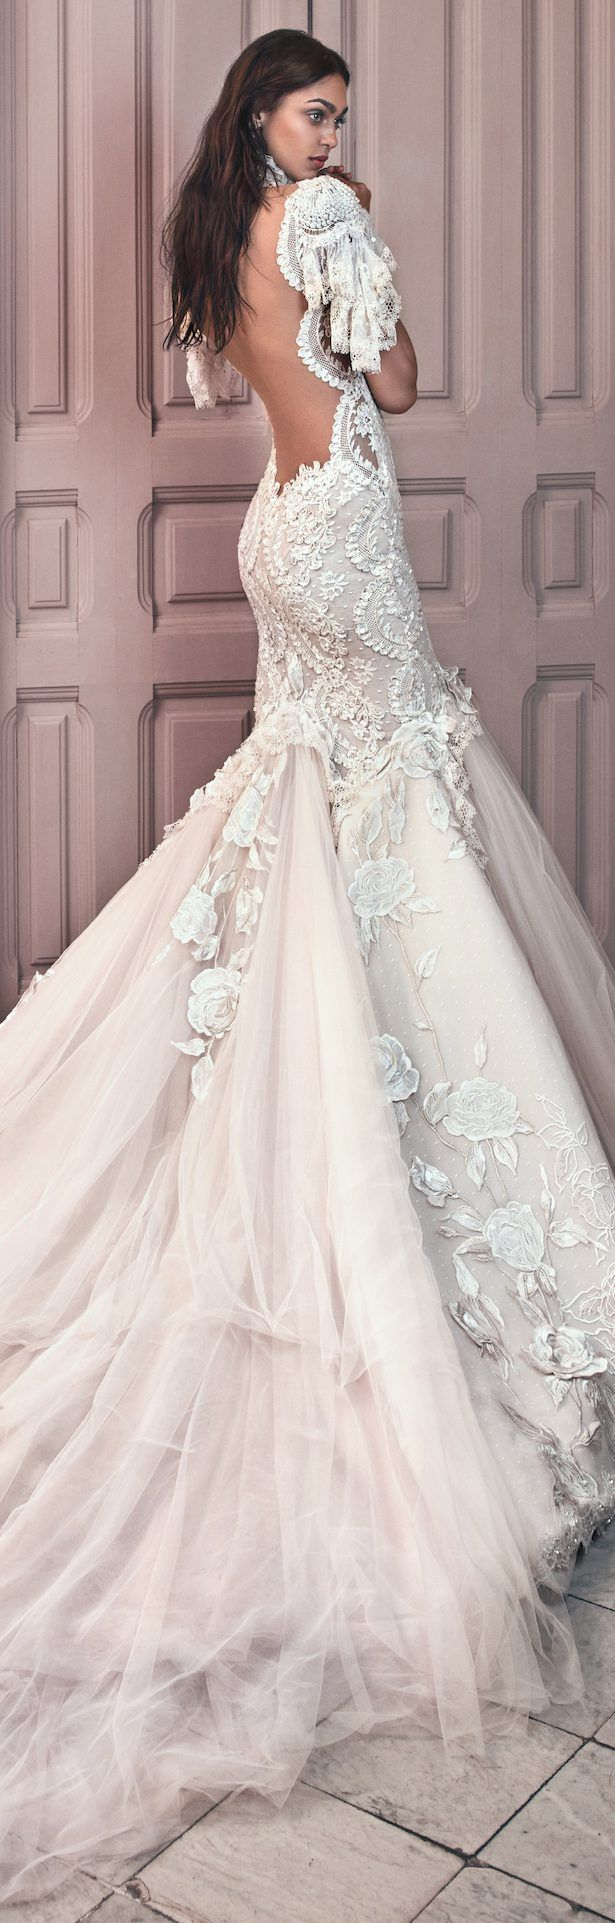 Galia lahav wedding dress collection victorian affinity my